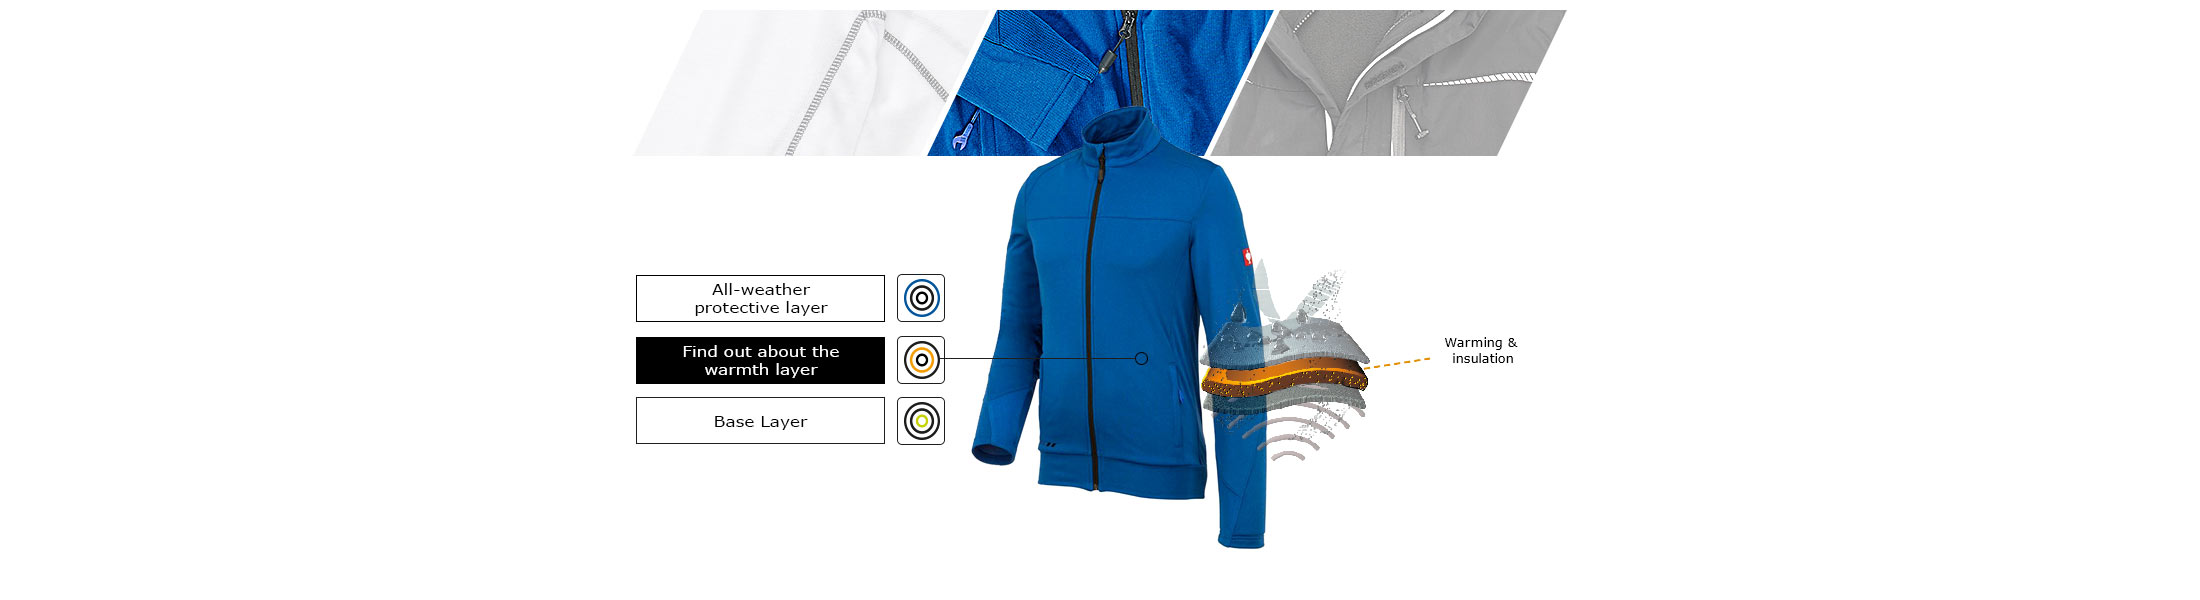 Workwear warmth layer - warmth and insulation